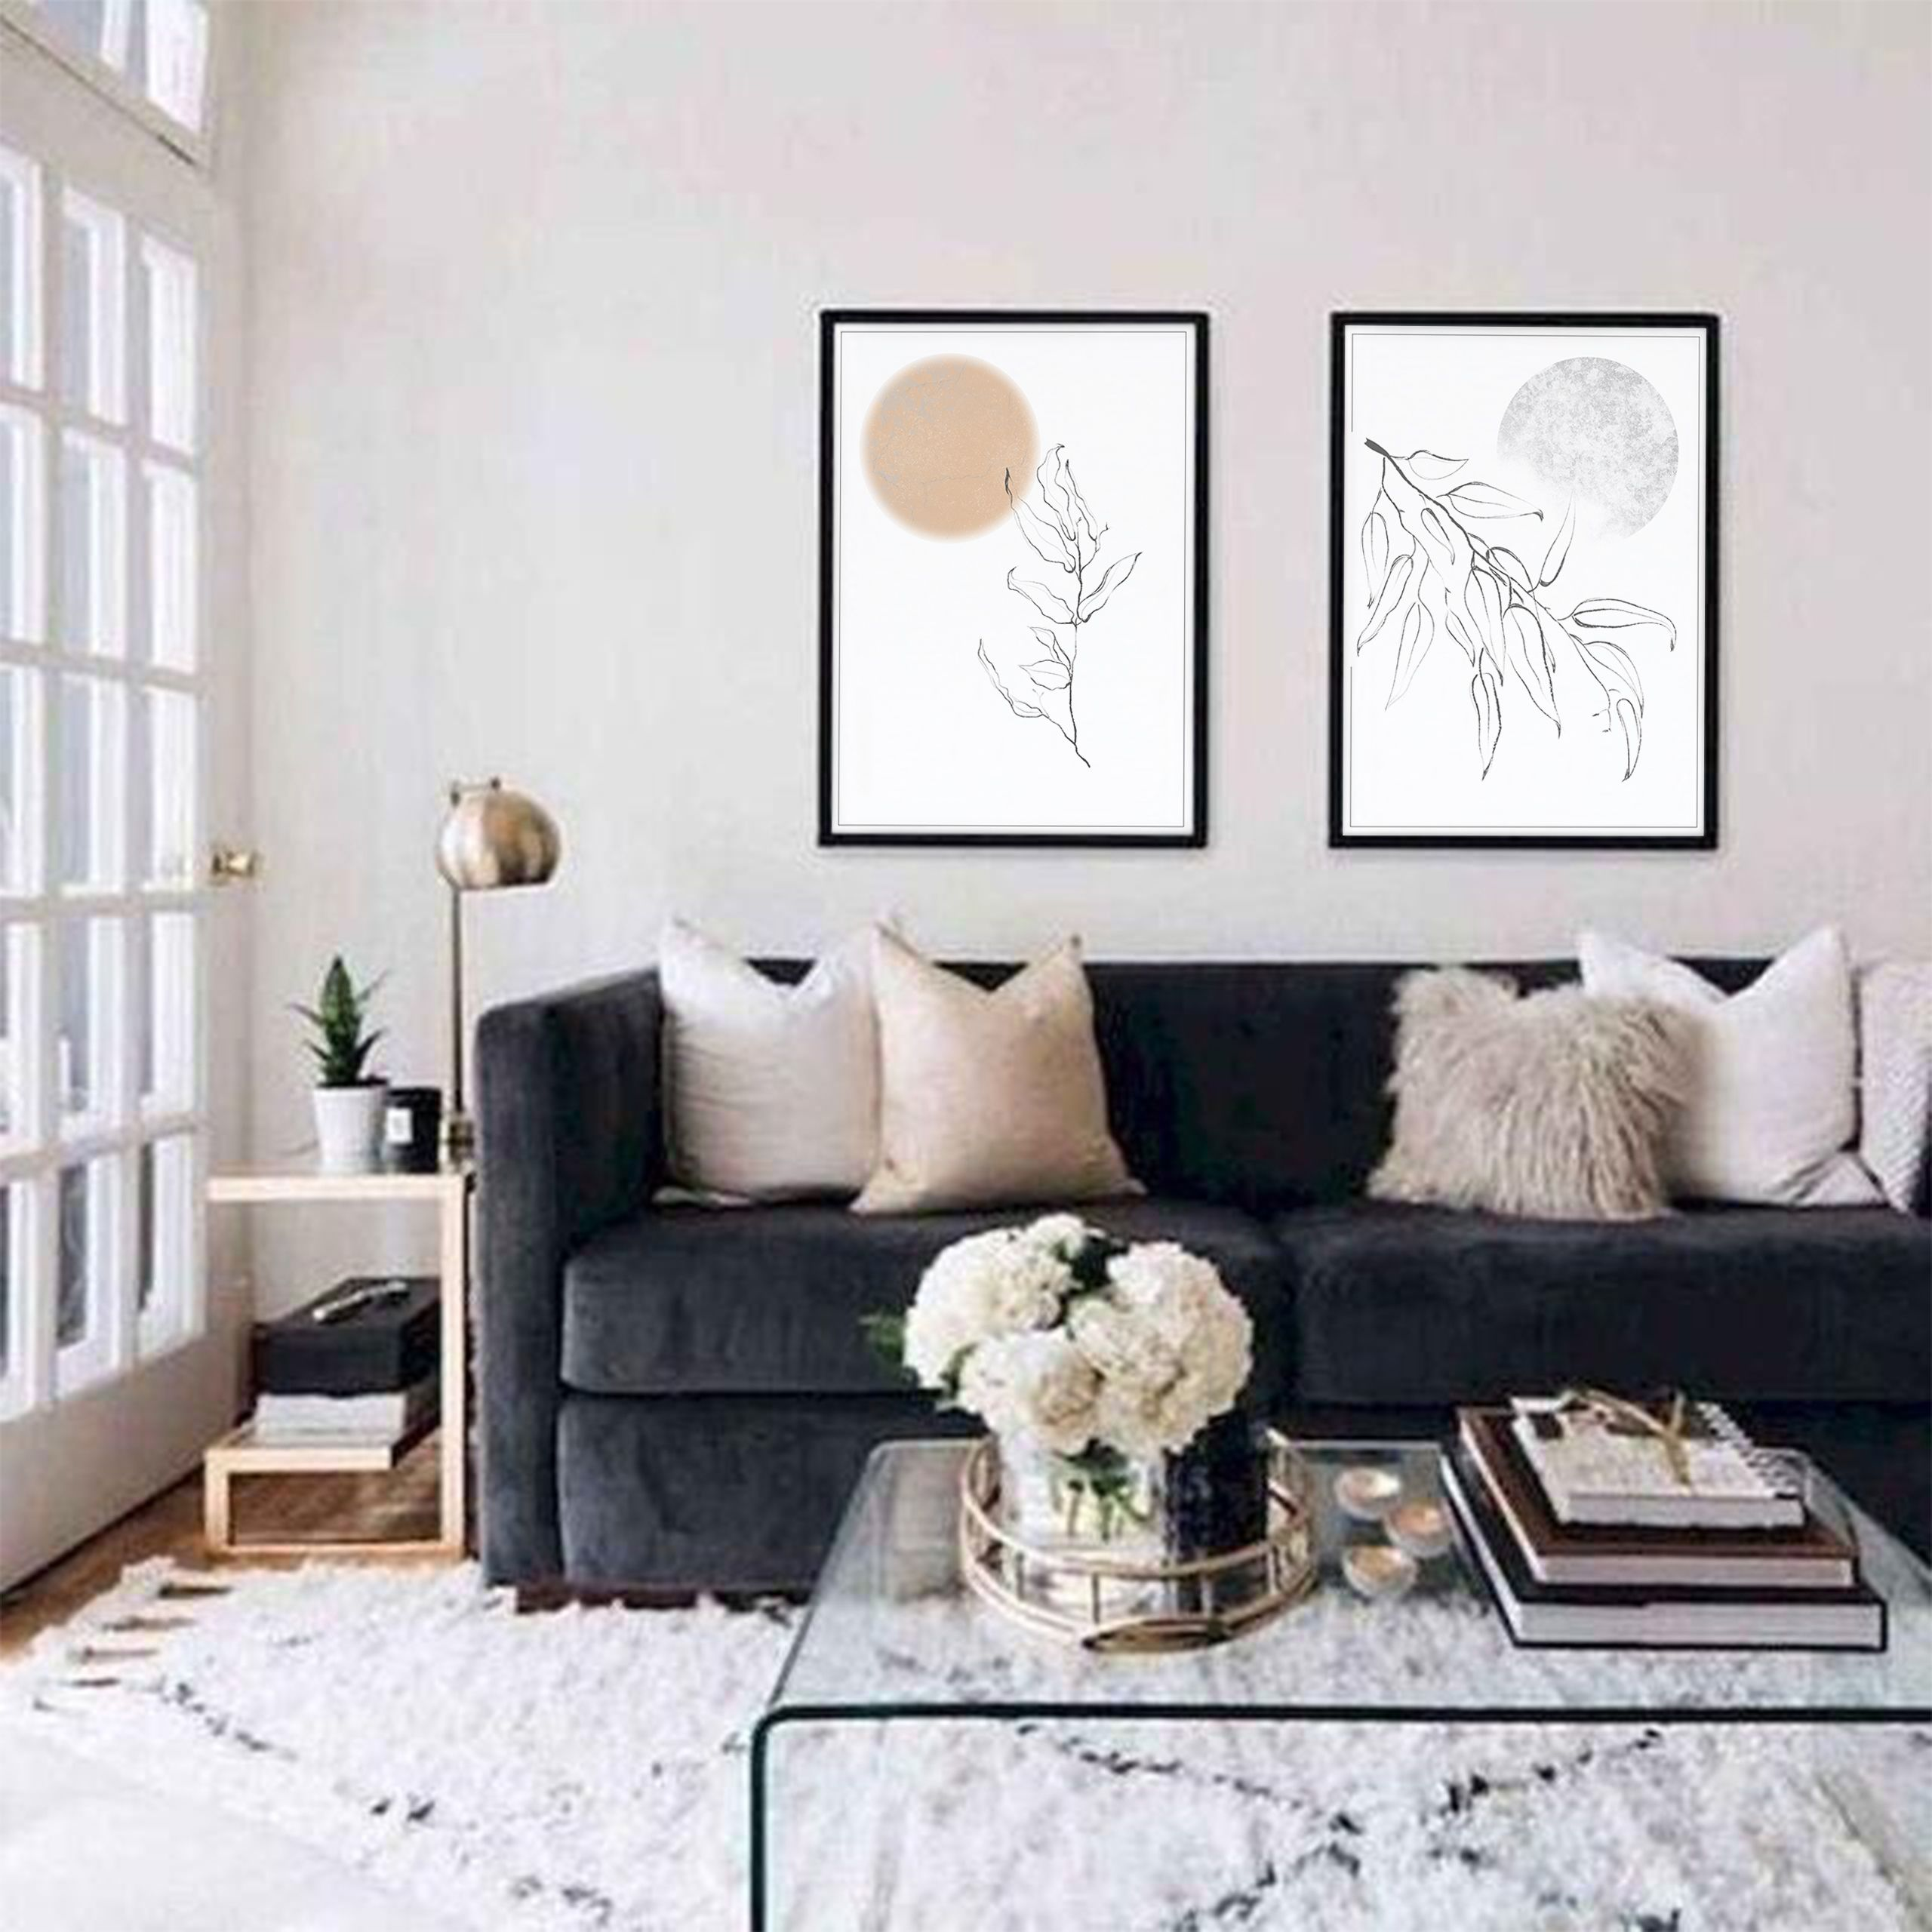 Sun And Moon Print Set Of 2 Modern Minimalist Drawing Wall Etsy In 2021 Black Couch Living Room Black Sofa Living Room Black Living Room